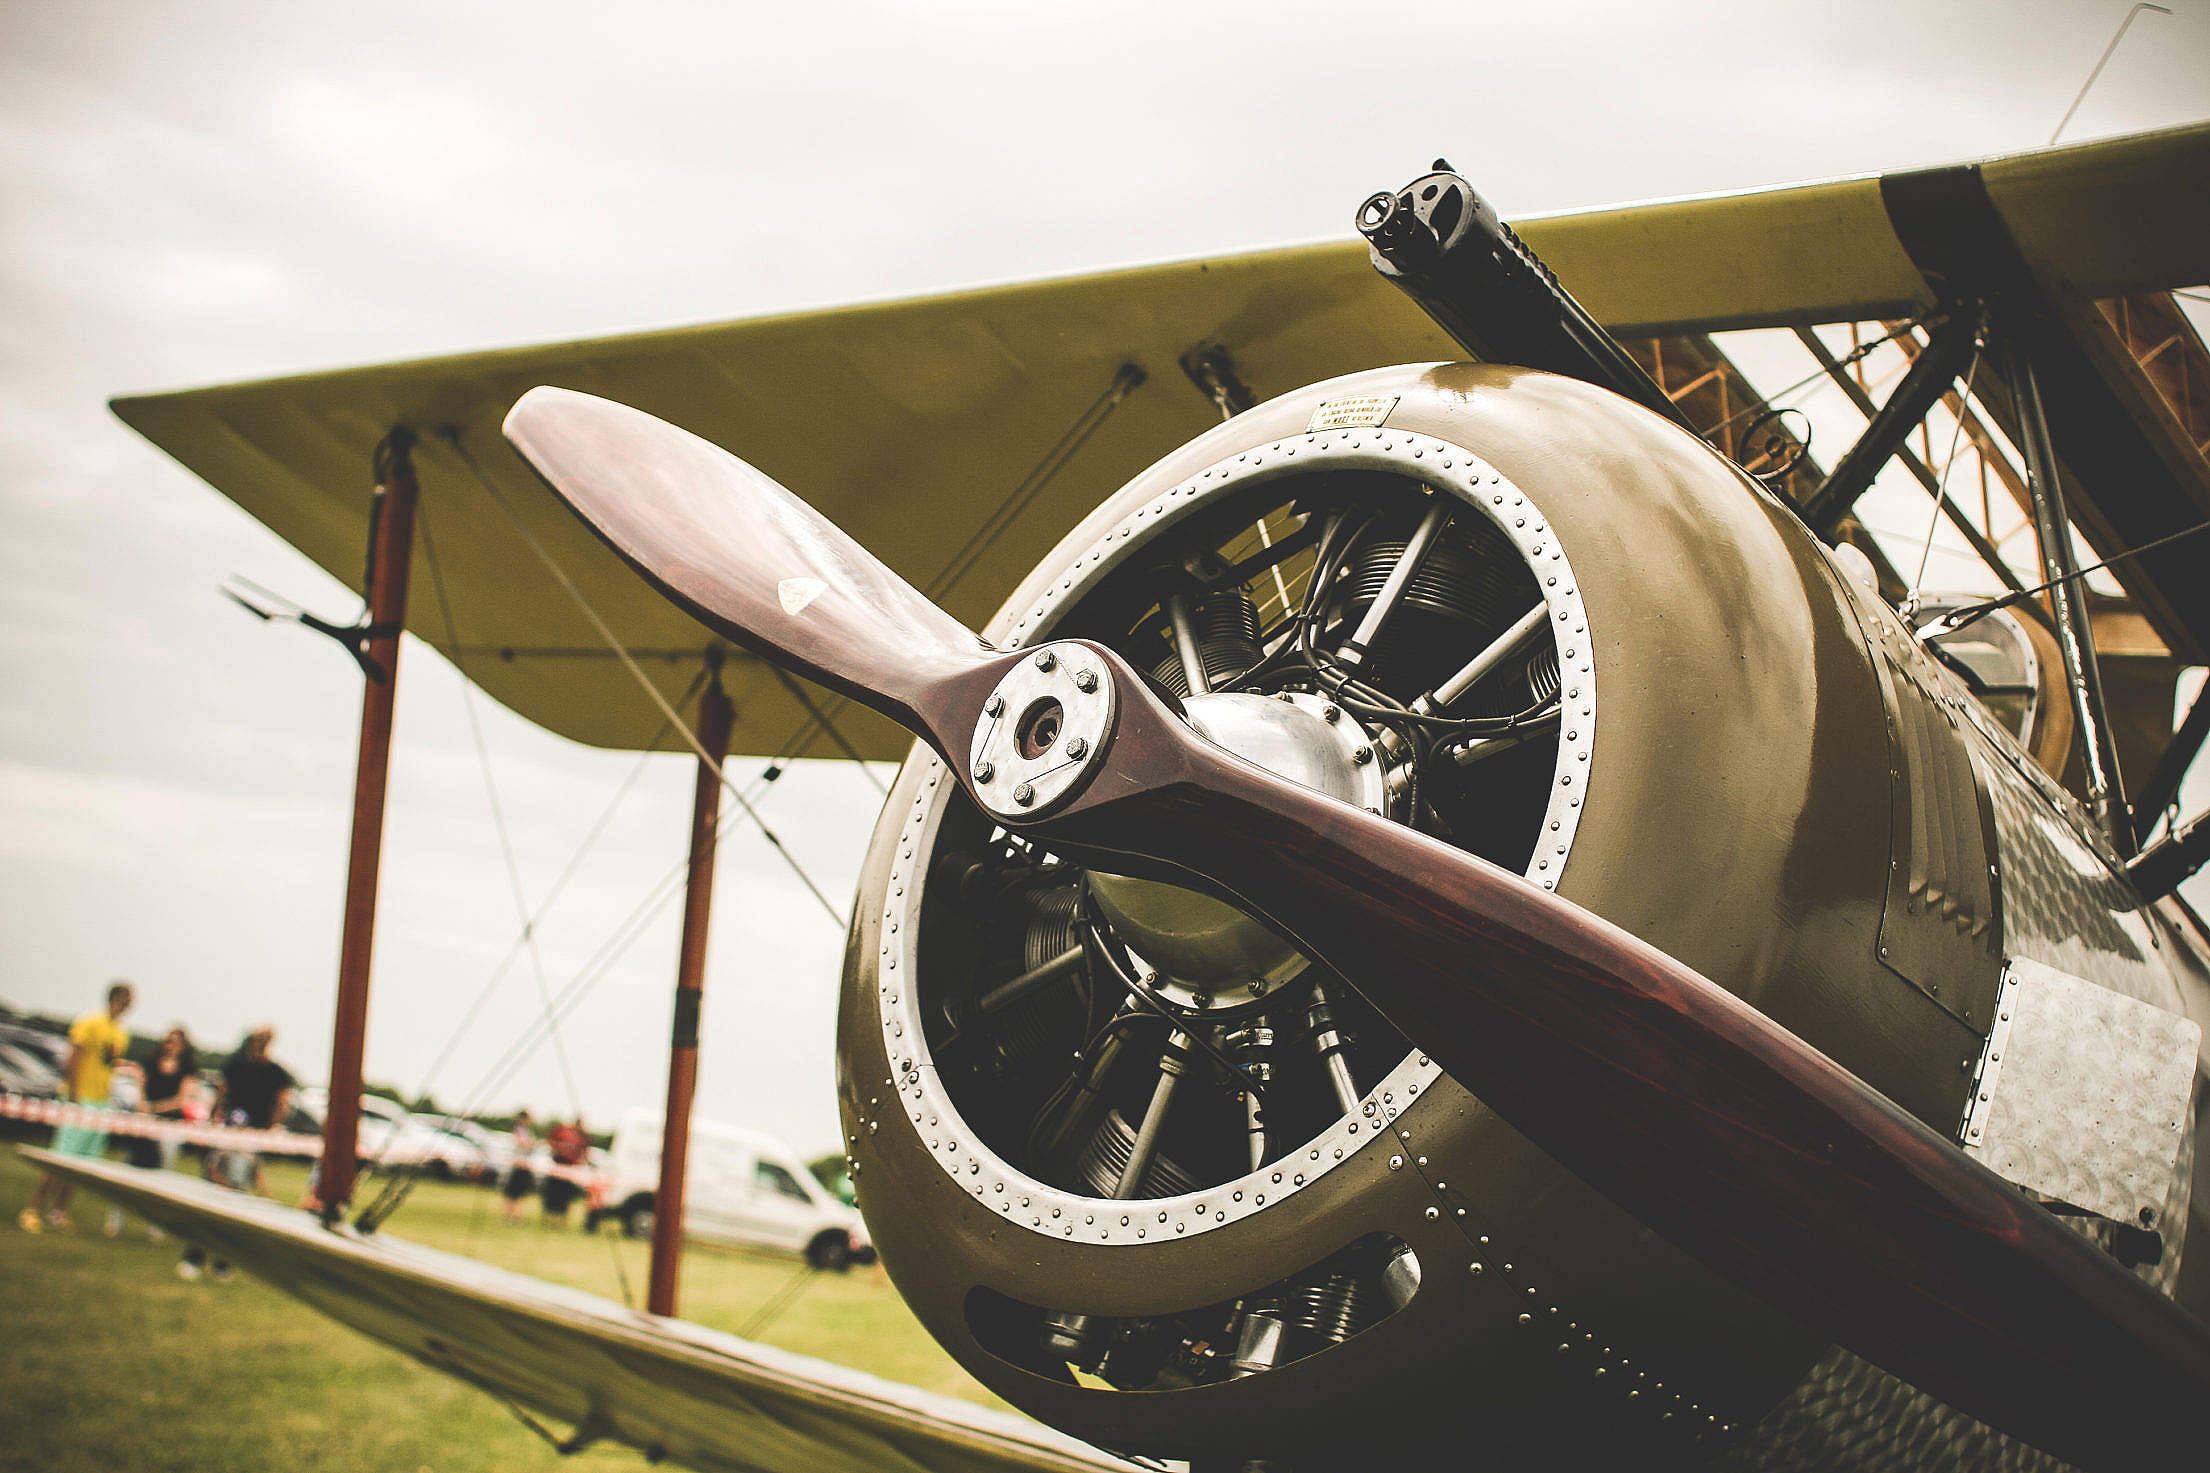 Old Plane Propeller Free Stock Photo